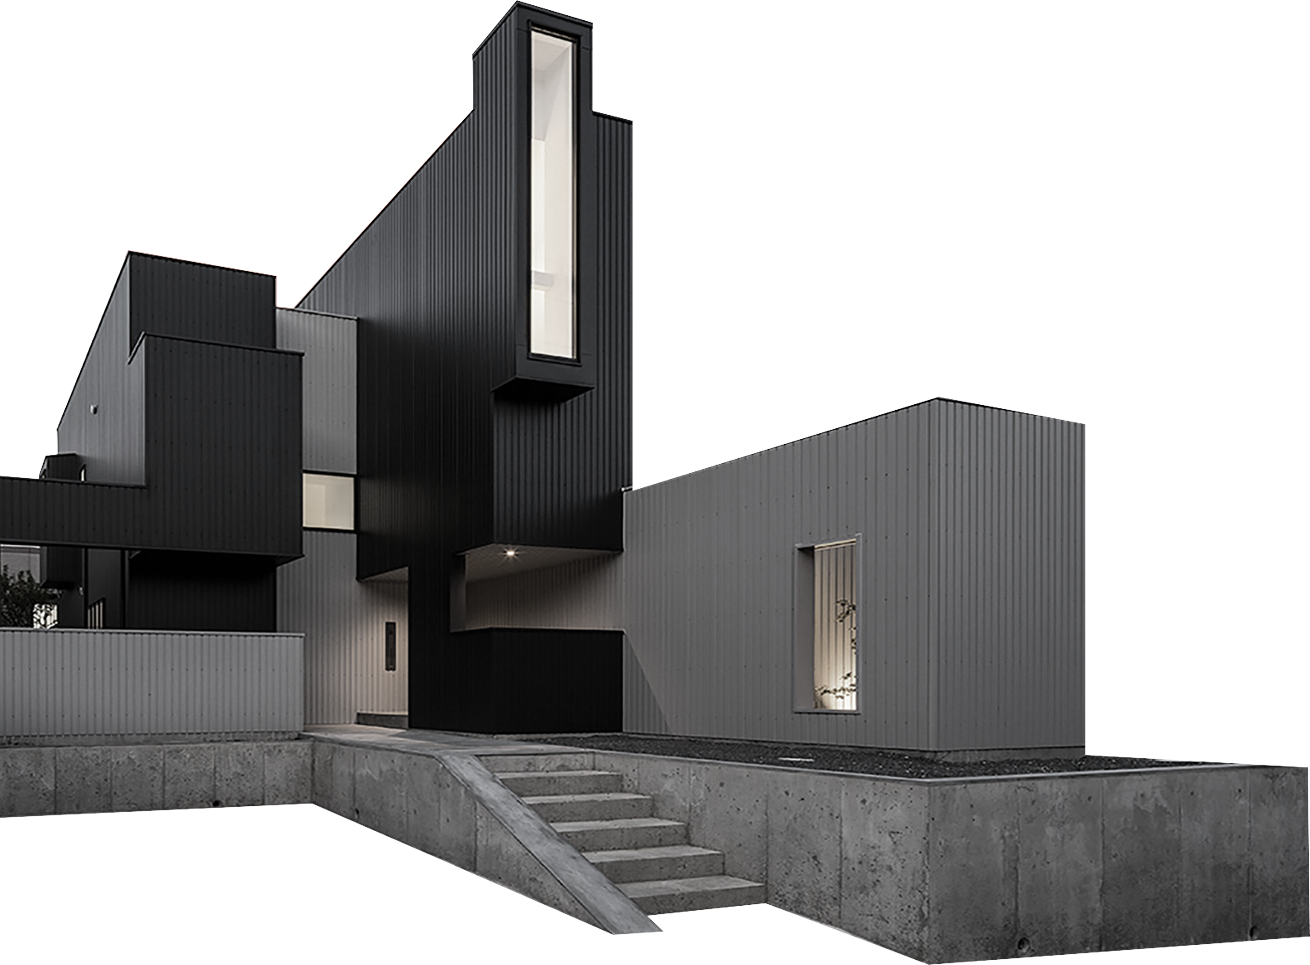 All about Japanese modern architecture